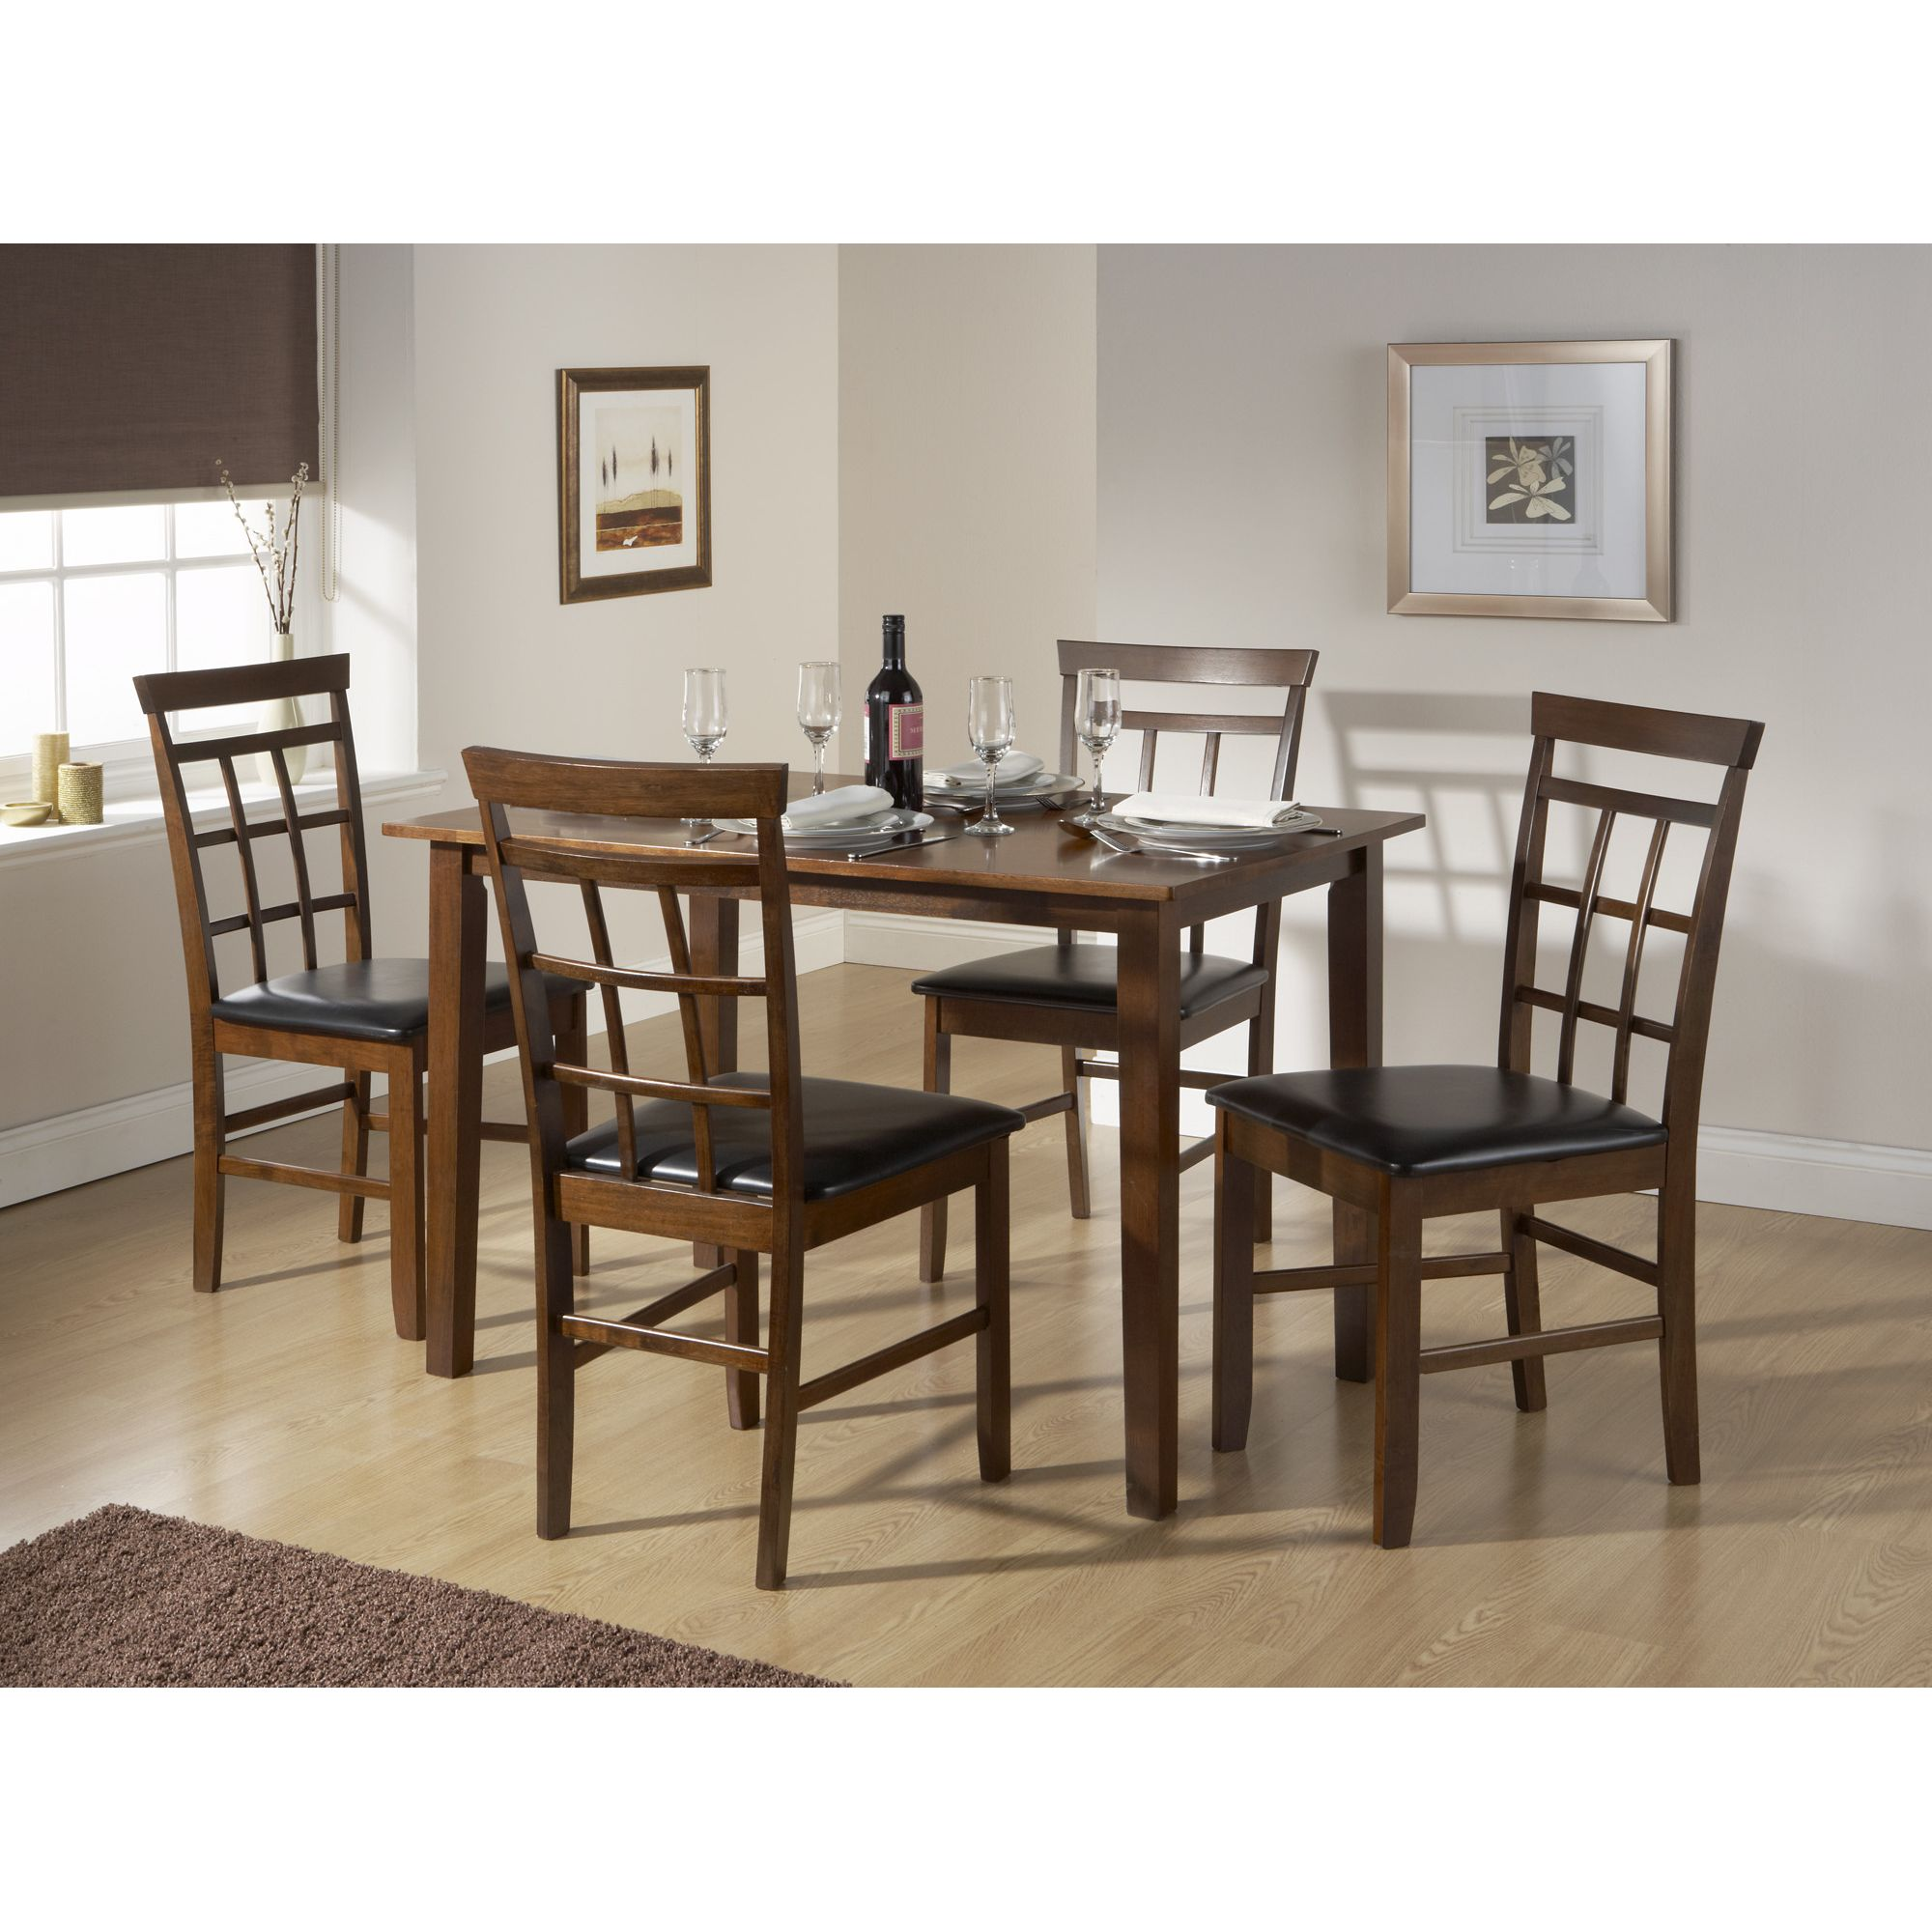 Elements Bude 5 Piece Dining Set - Walnut at Tescos Direct